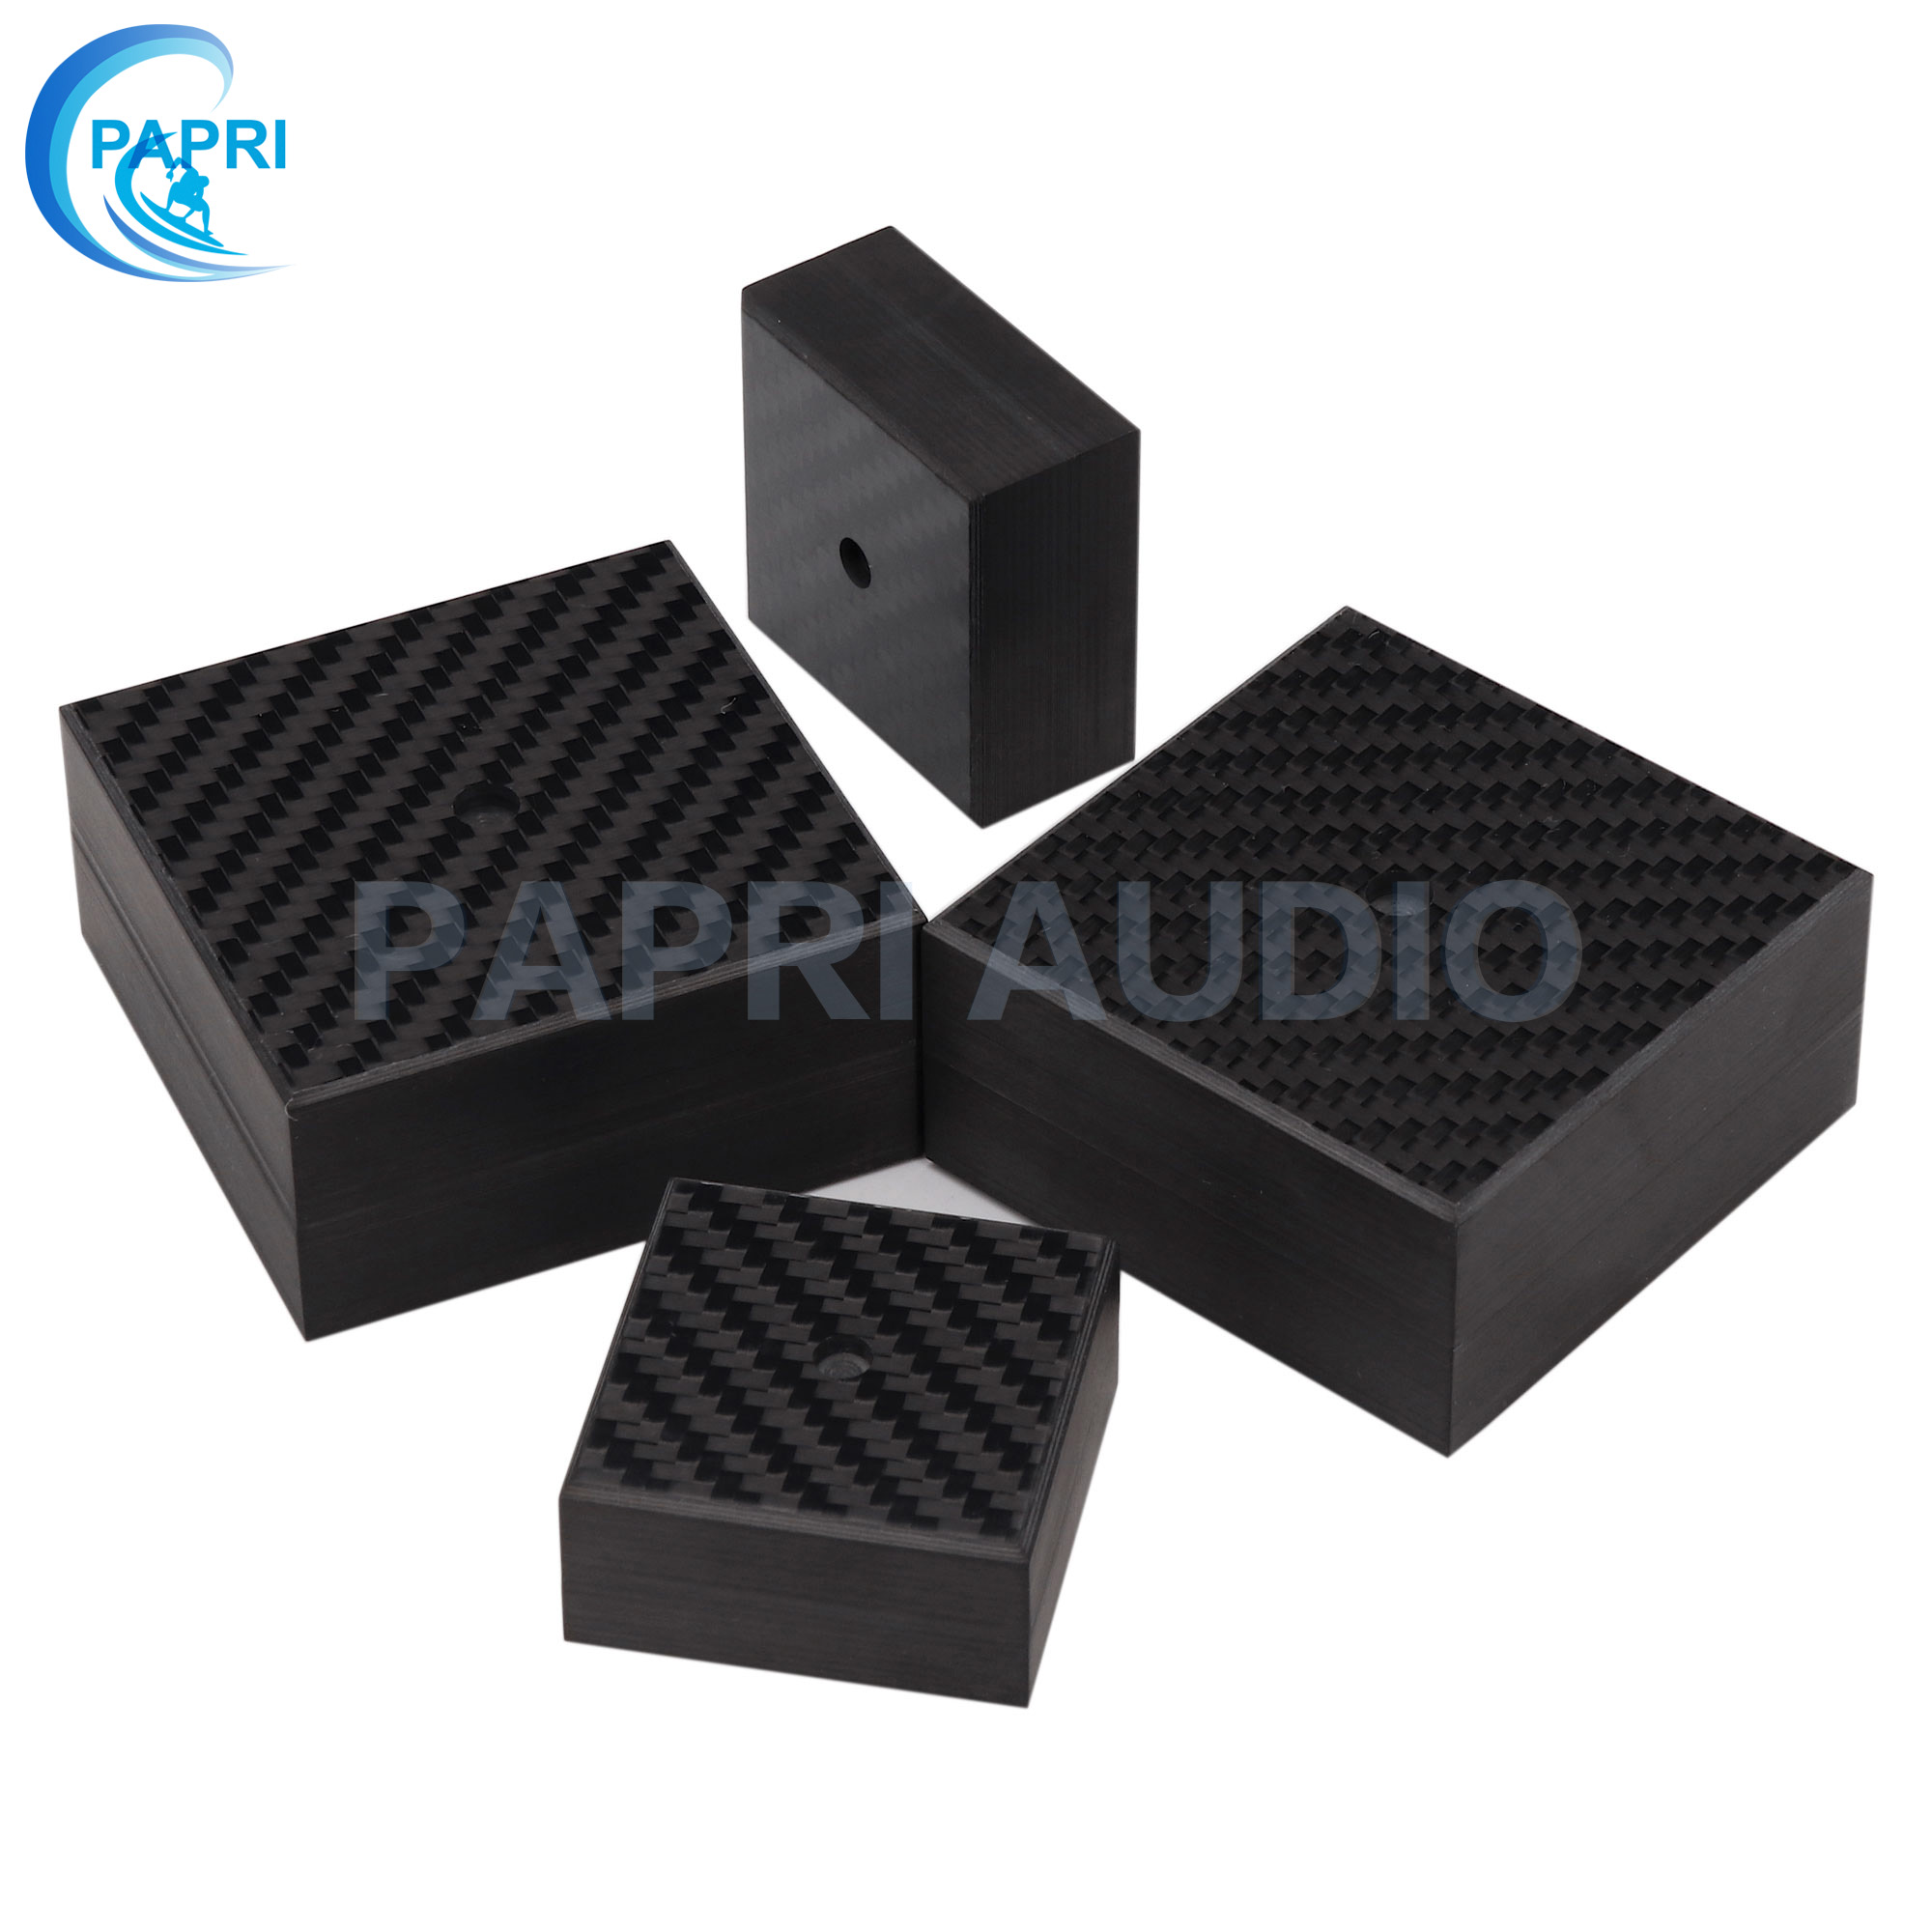 PAPRI Speaker Spike 40x20mm 60*30mm Base Feet Carbon Fiber Stand Chassis Cone Pad Isolation Pads HiFi Amplifier CD Player 1PCS